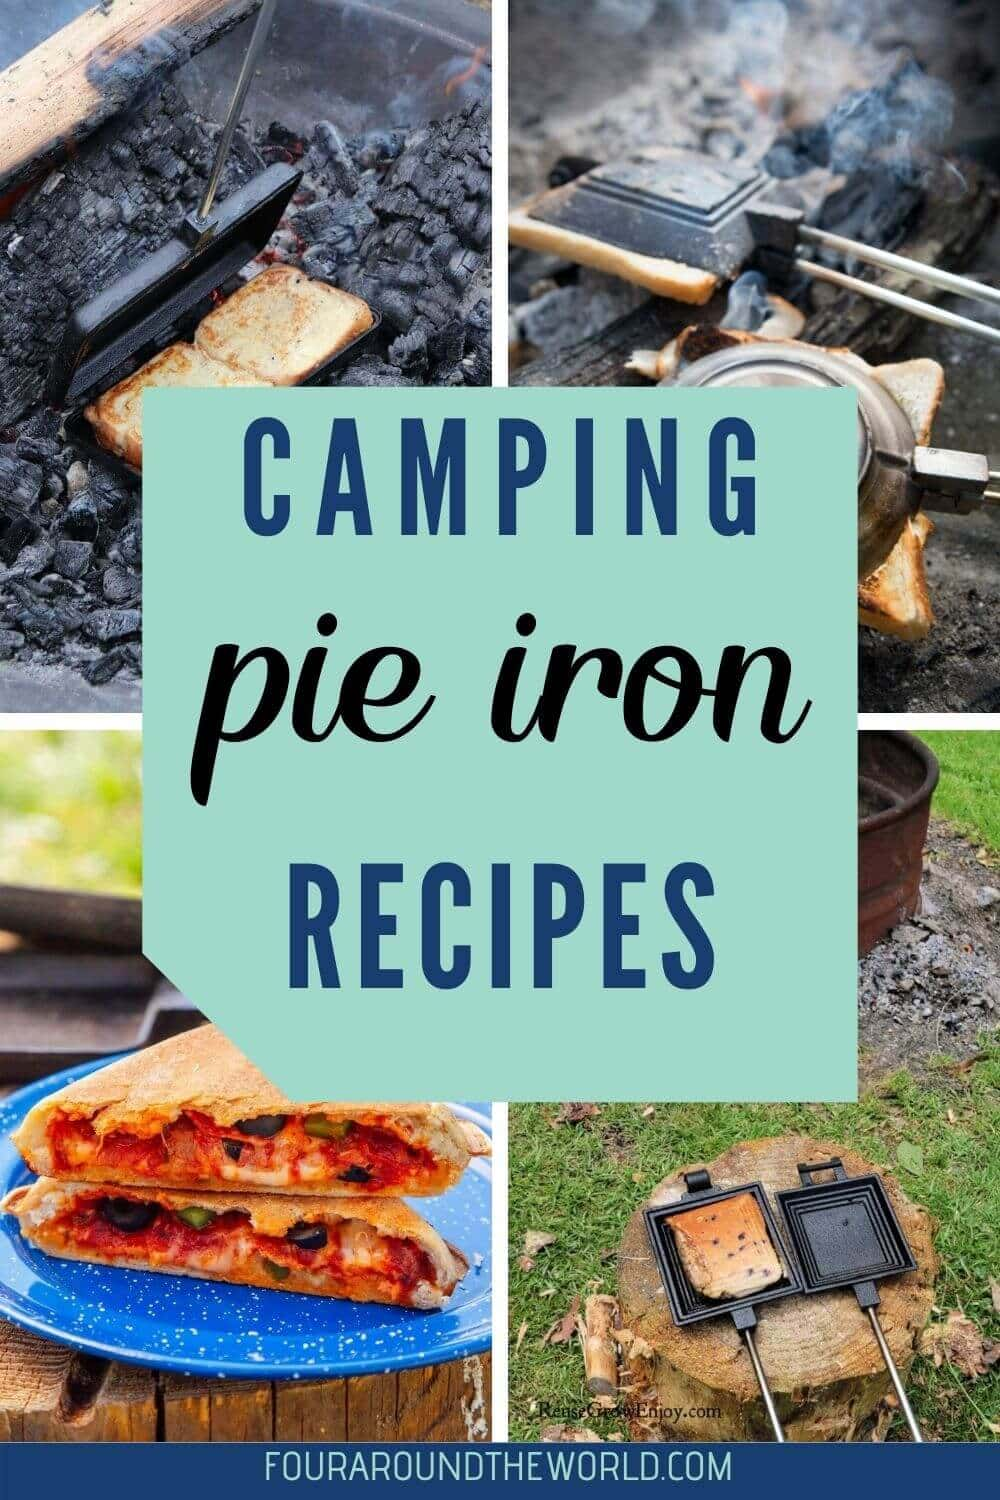 EAsy Camping pie iron recipes